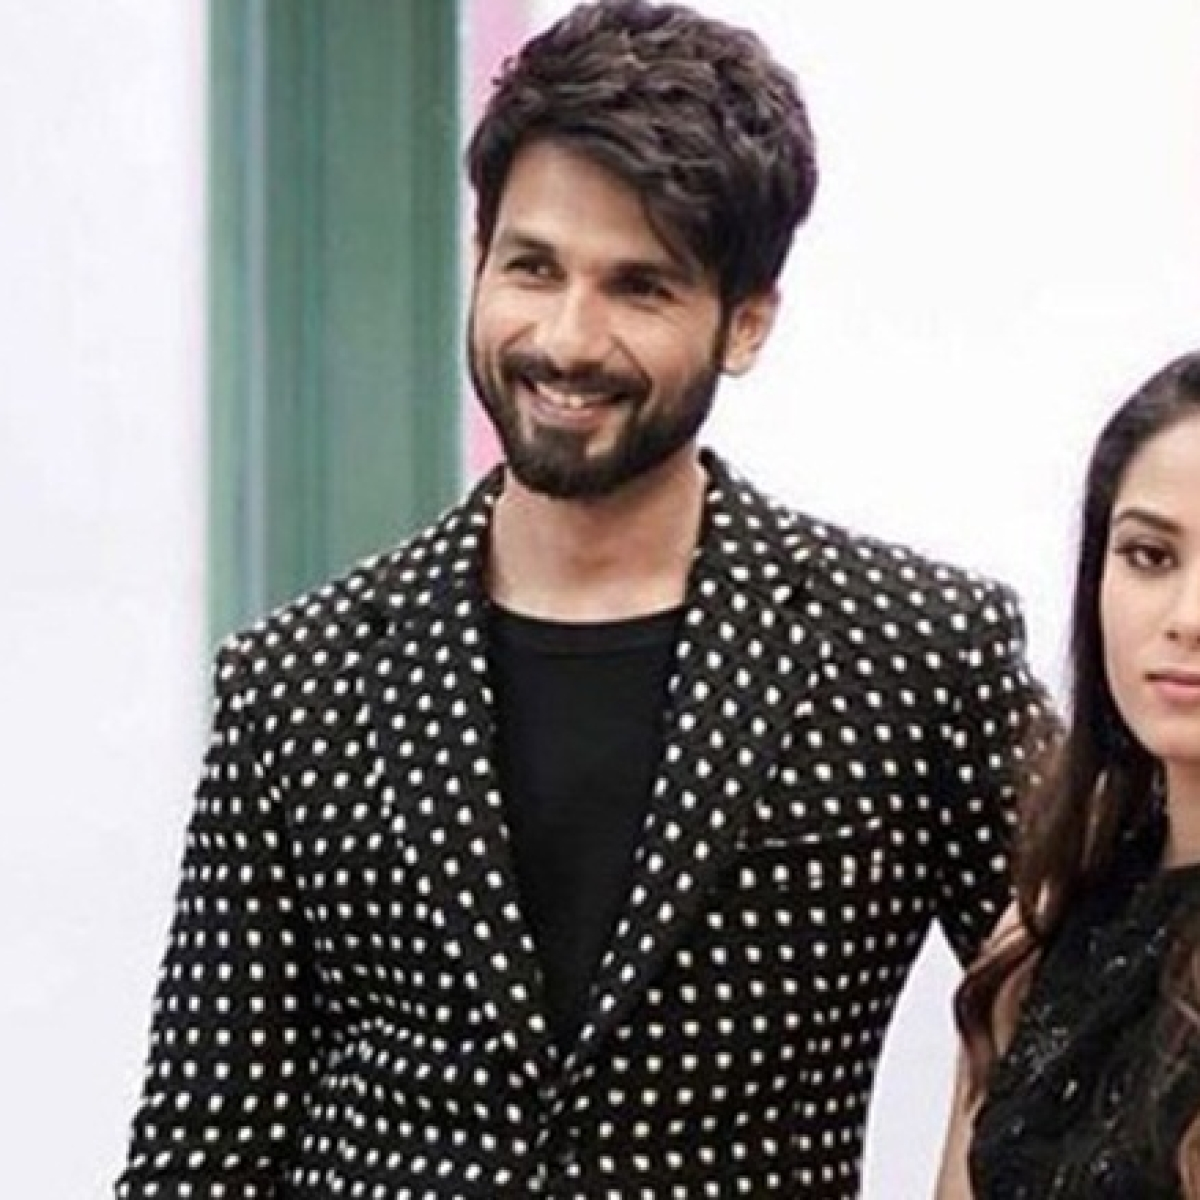 Shahid Kapoor's wife Mira Kapoor set to turn restaurateur soon?